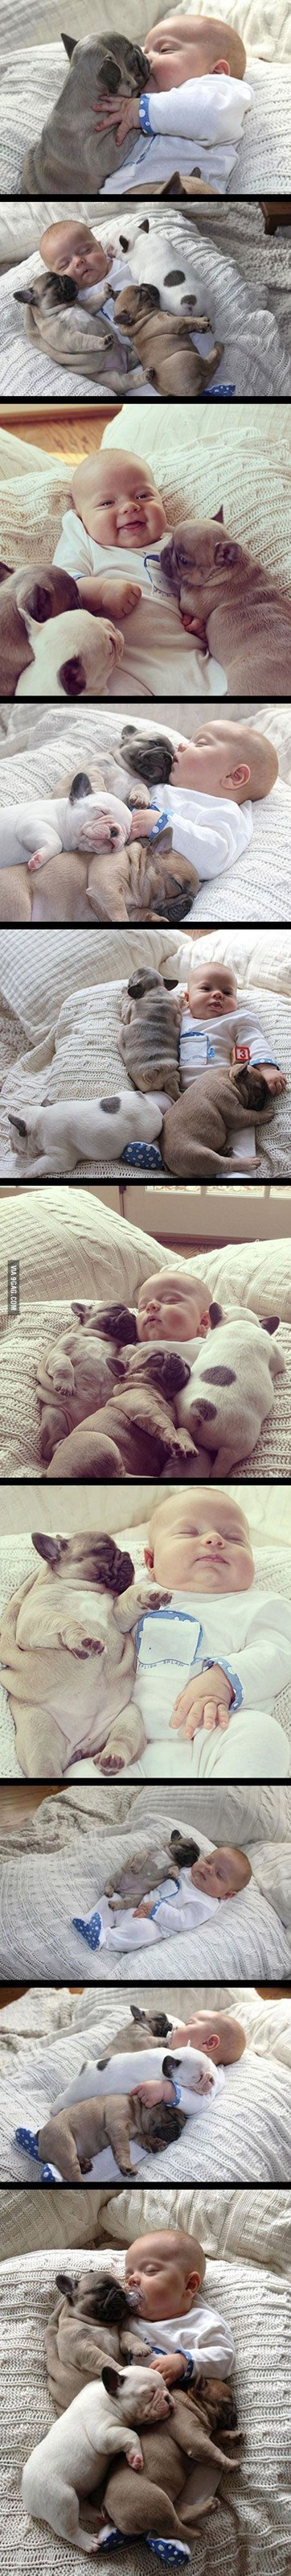 Babies puppies snuggling kissing - 7768635648